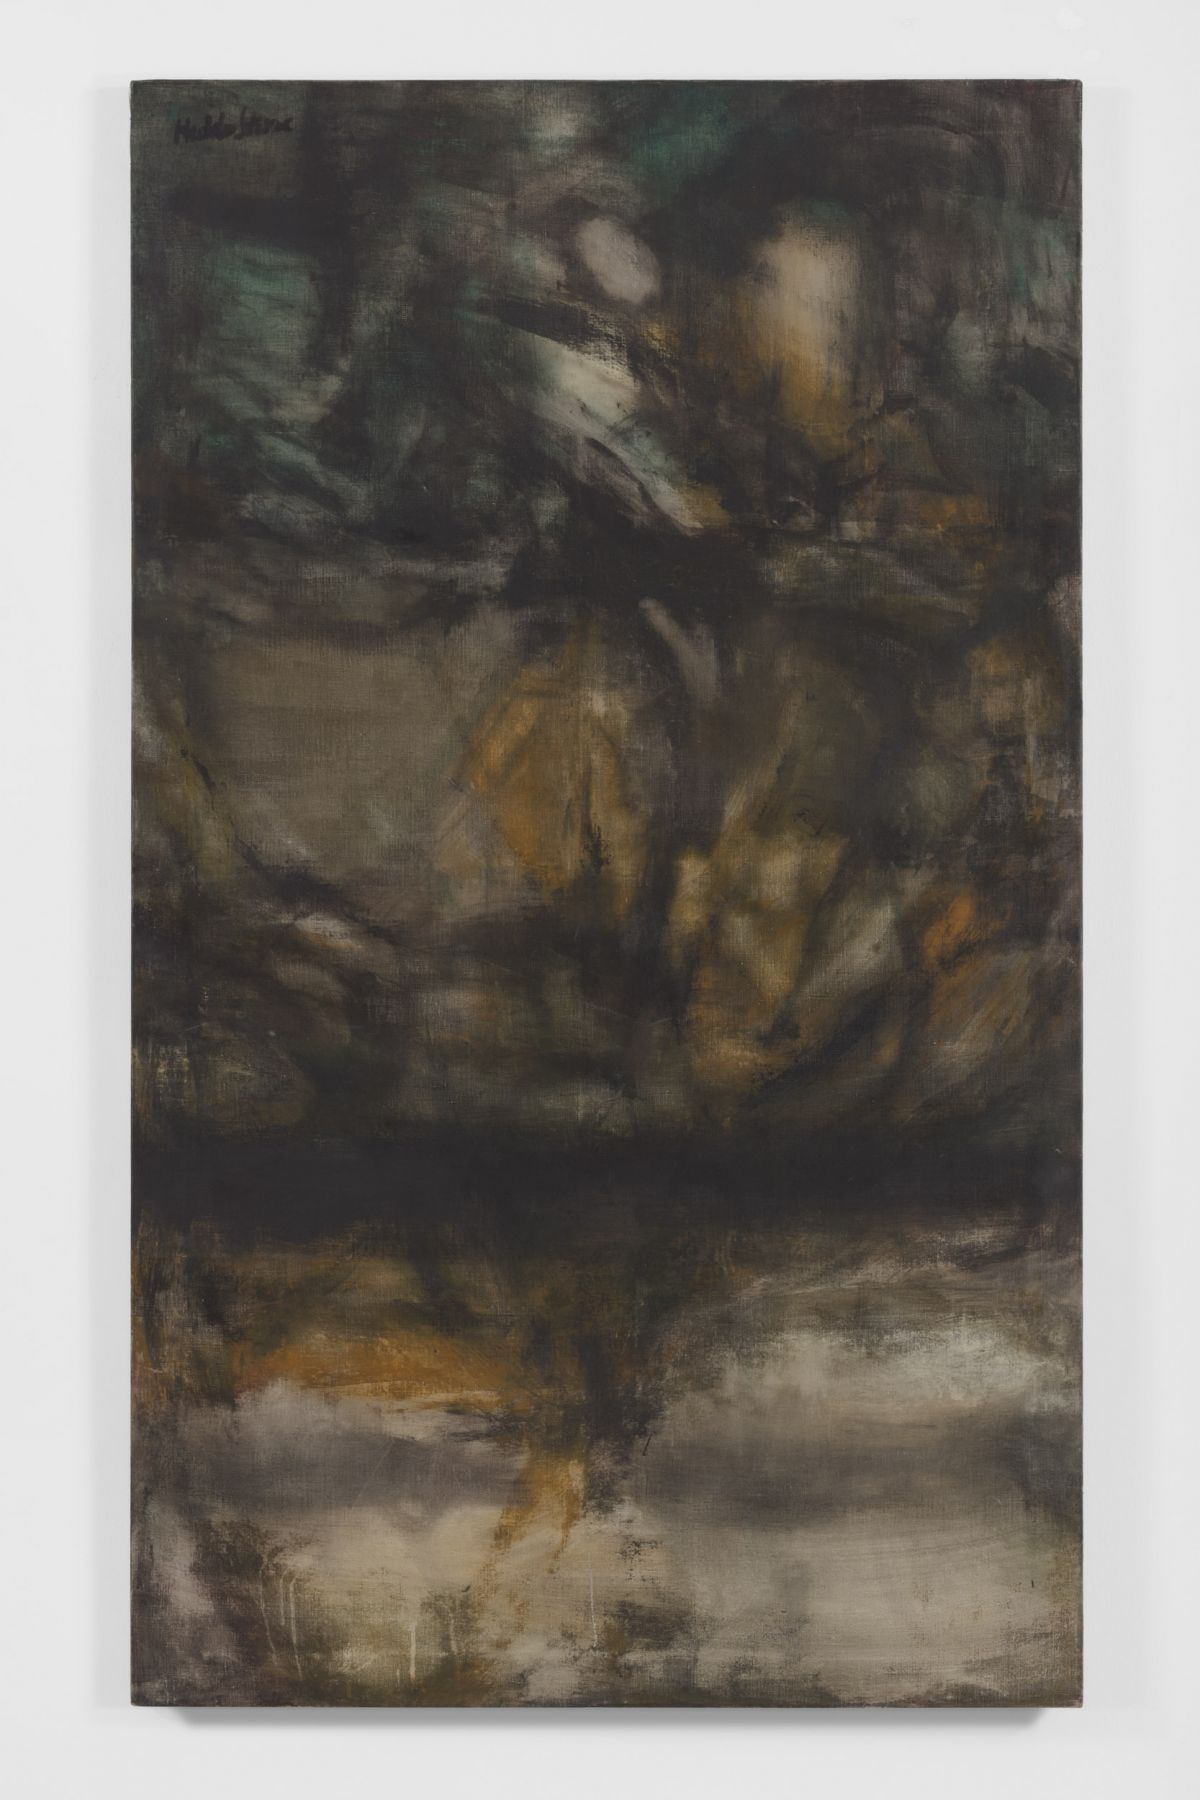 #1-1959, 1959 Oil on canvas